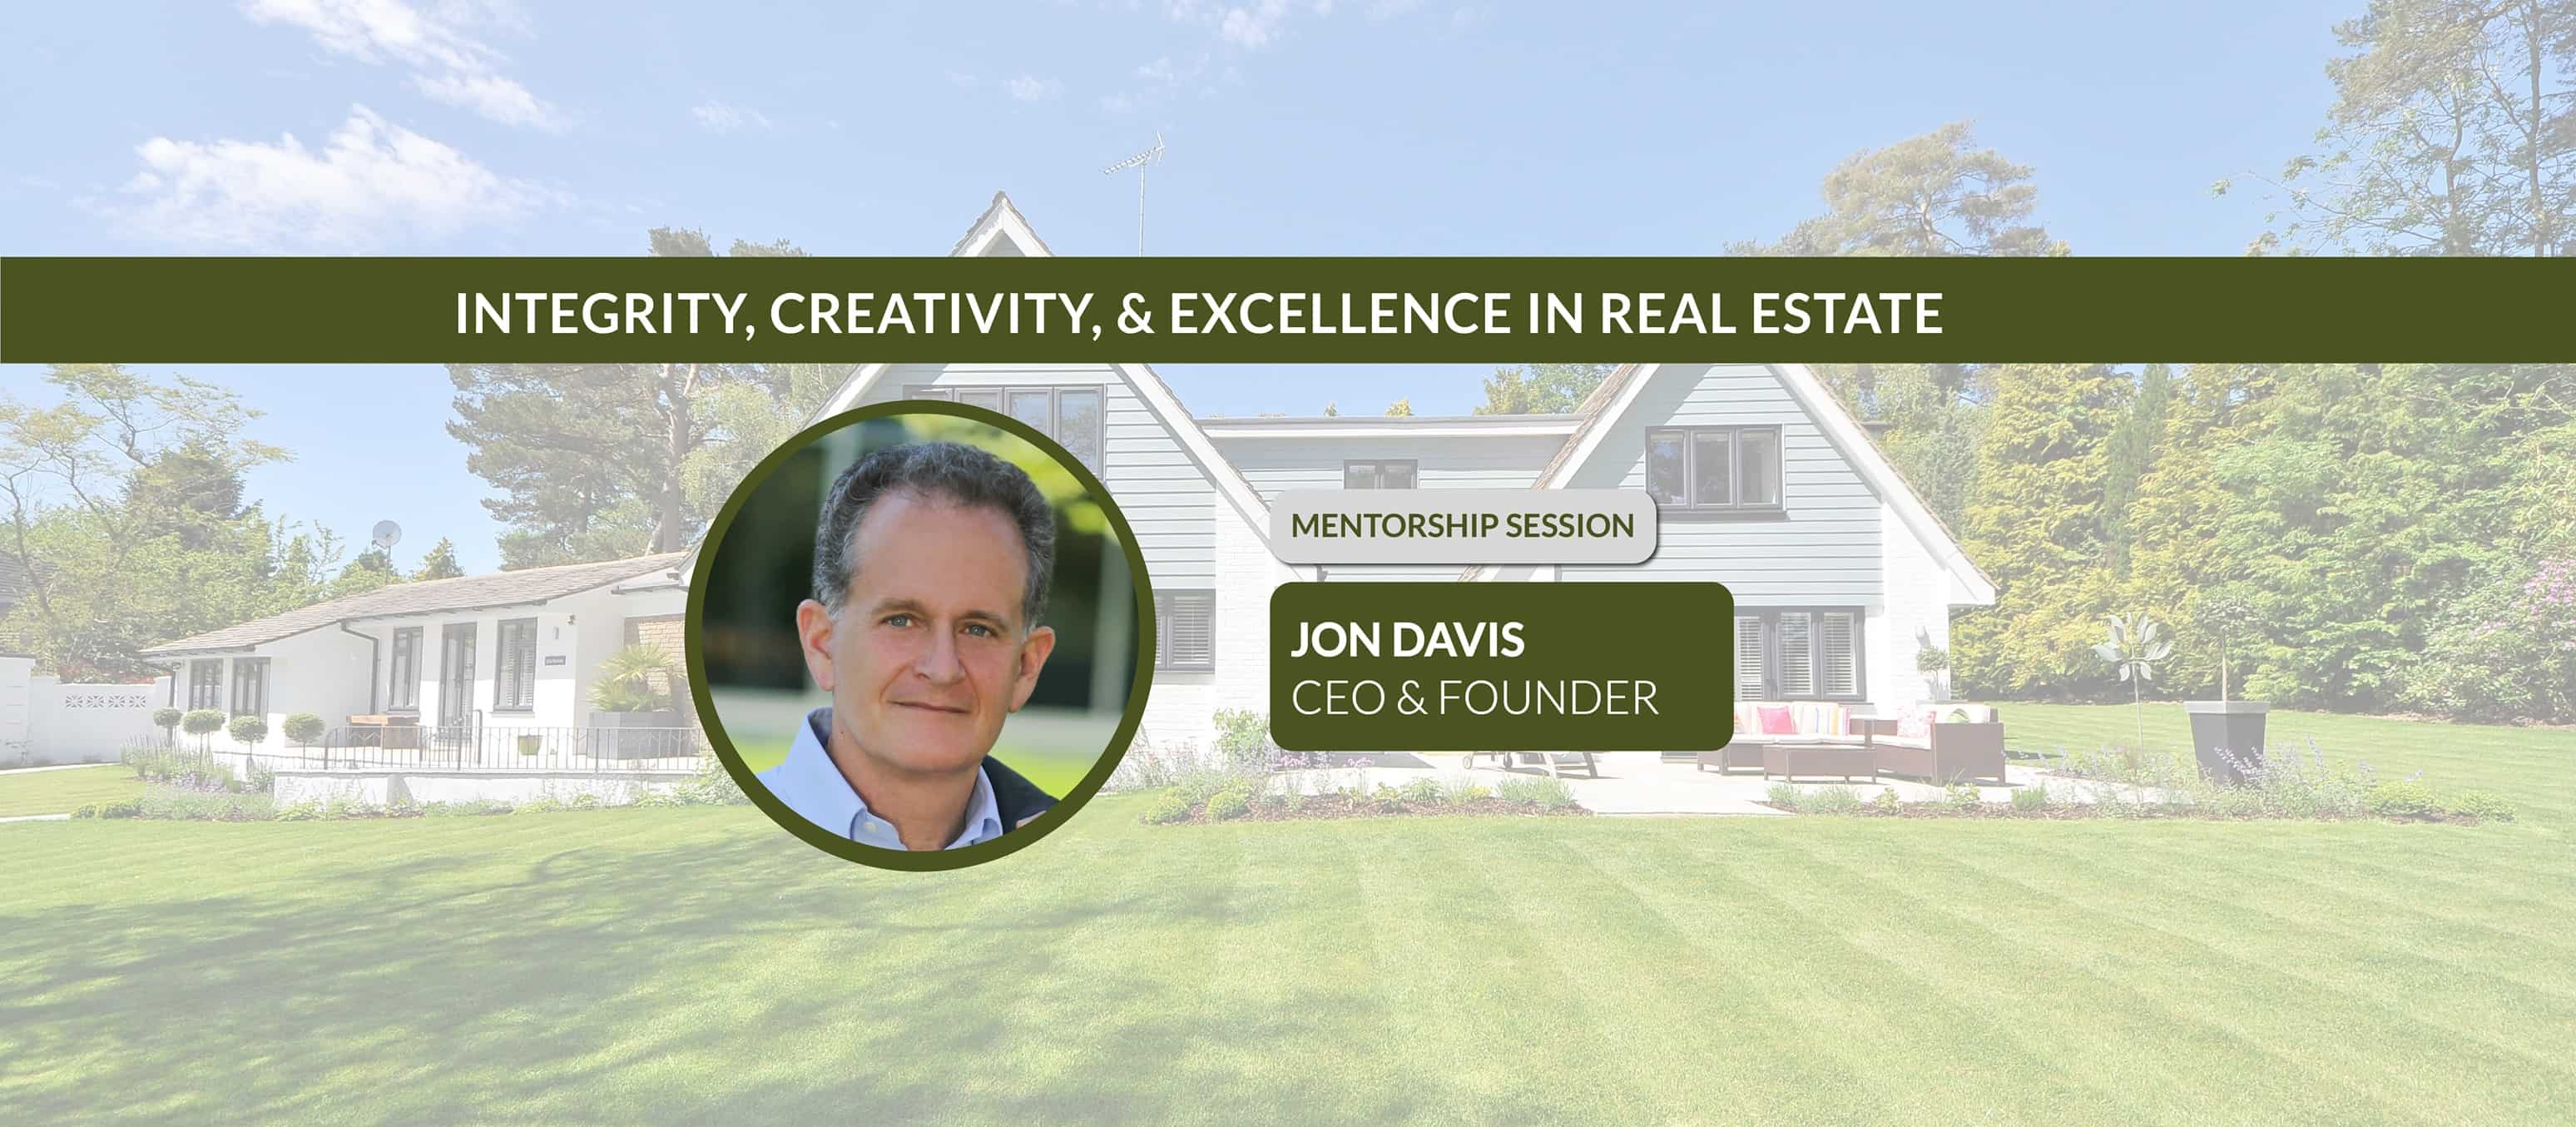 Integrity, Creativity, & Excellence in Real Estate with The Davis Companies